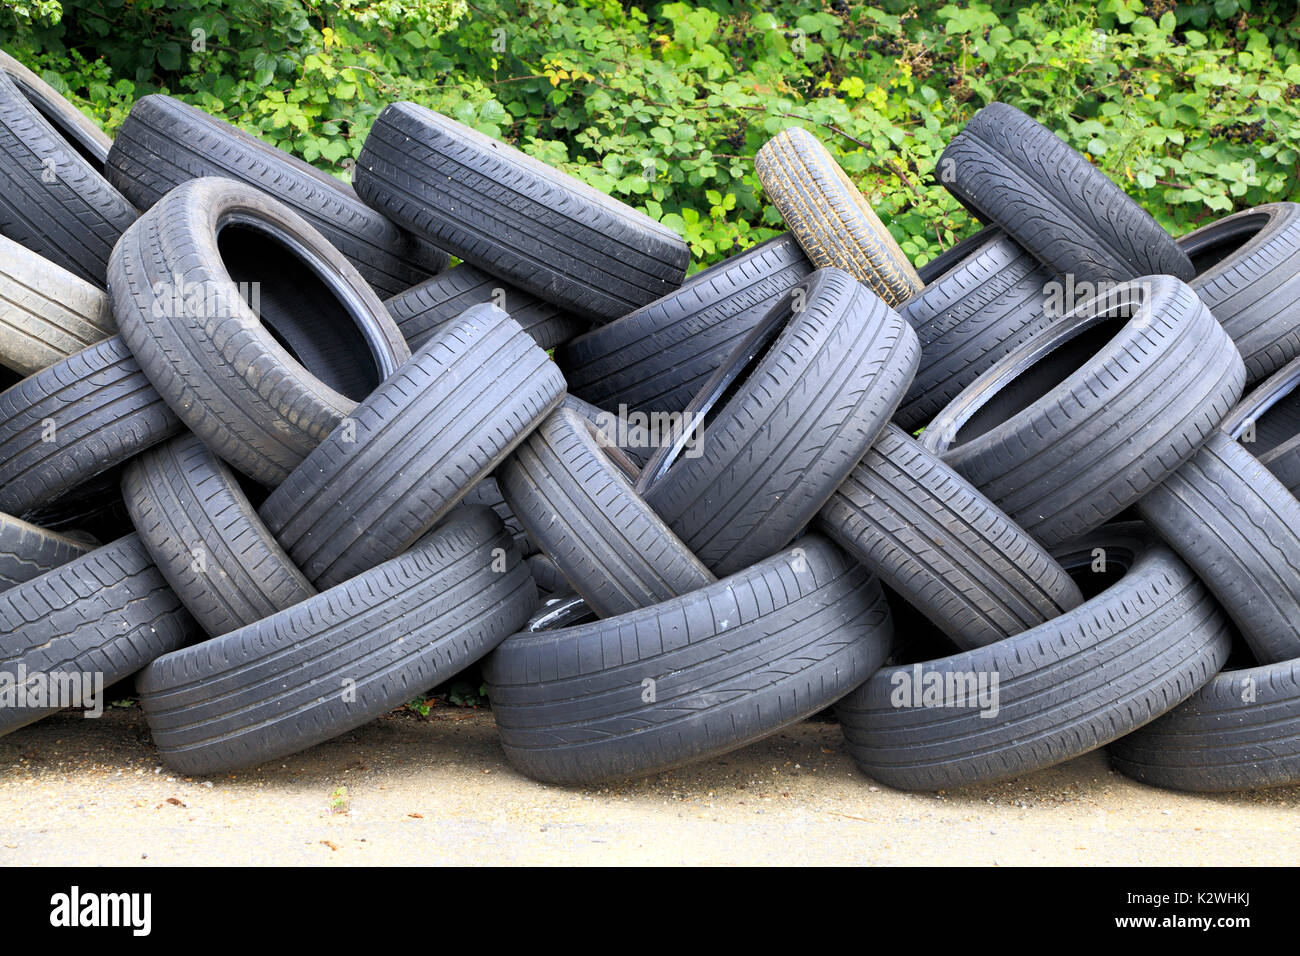 worn, old, motor car tyres, for recycling, England, UK - Stock Image